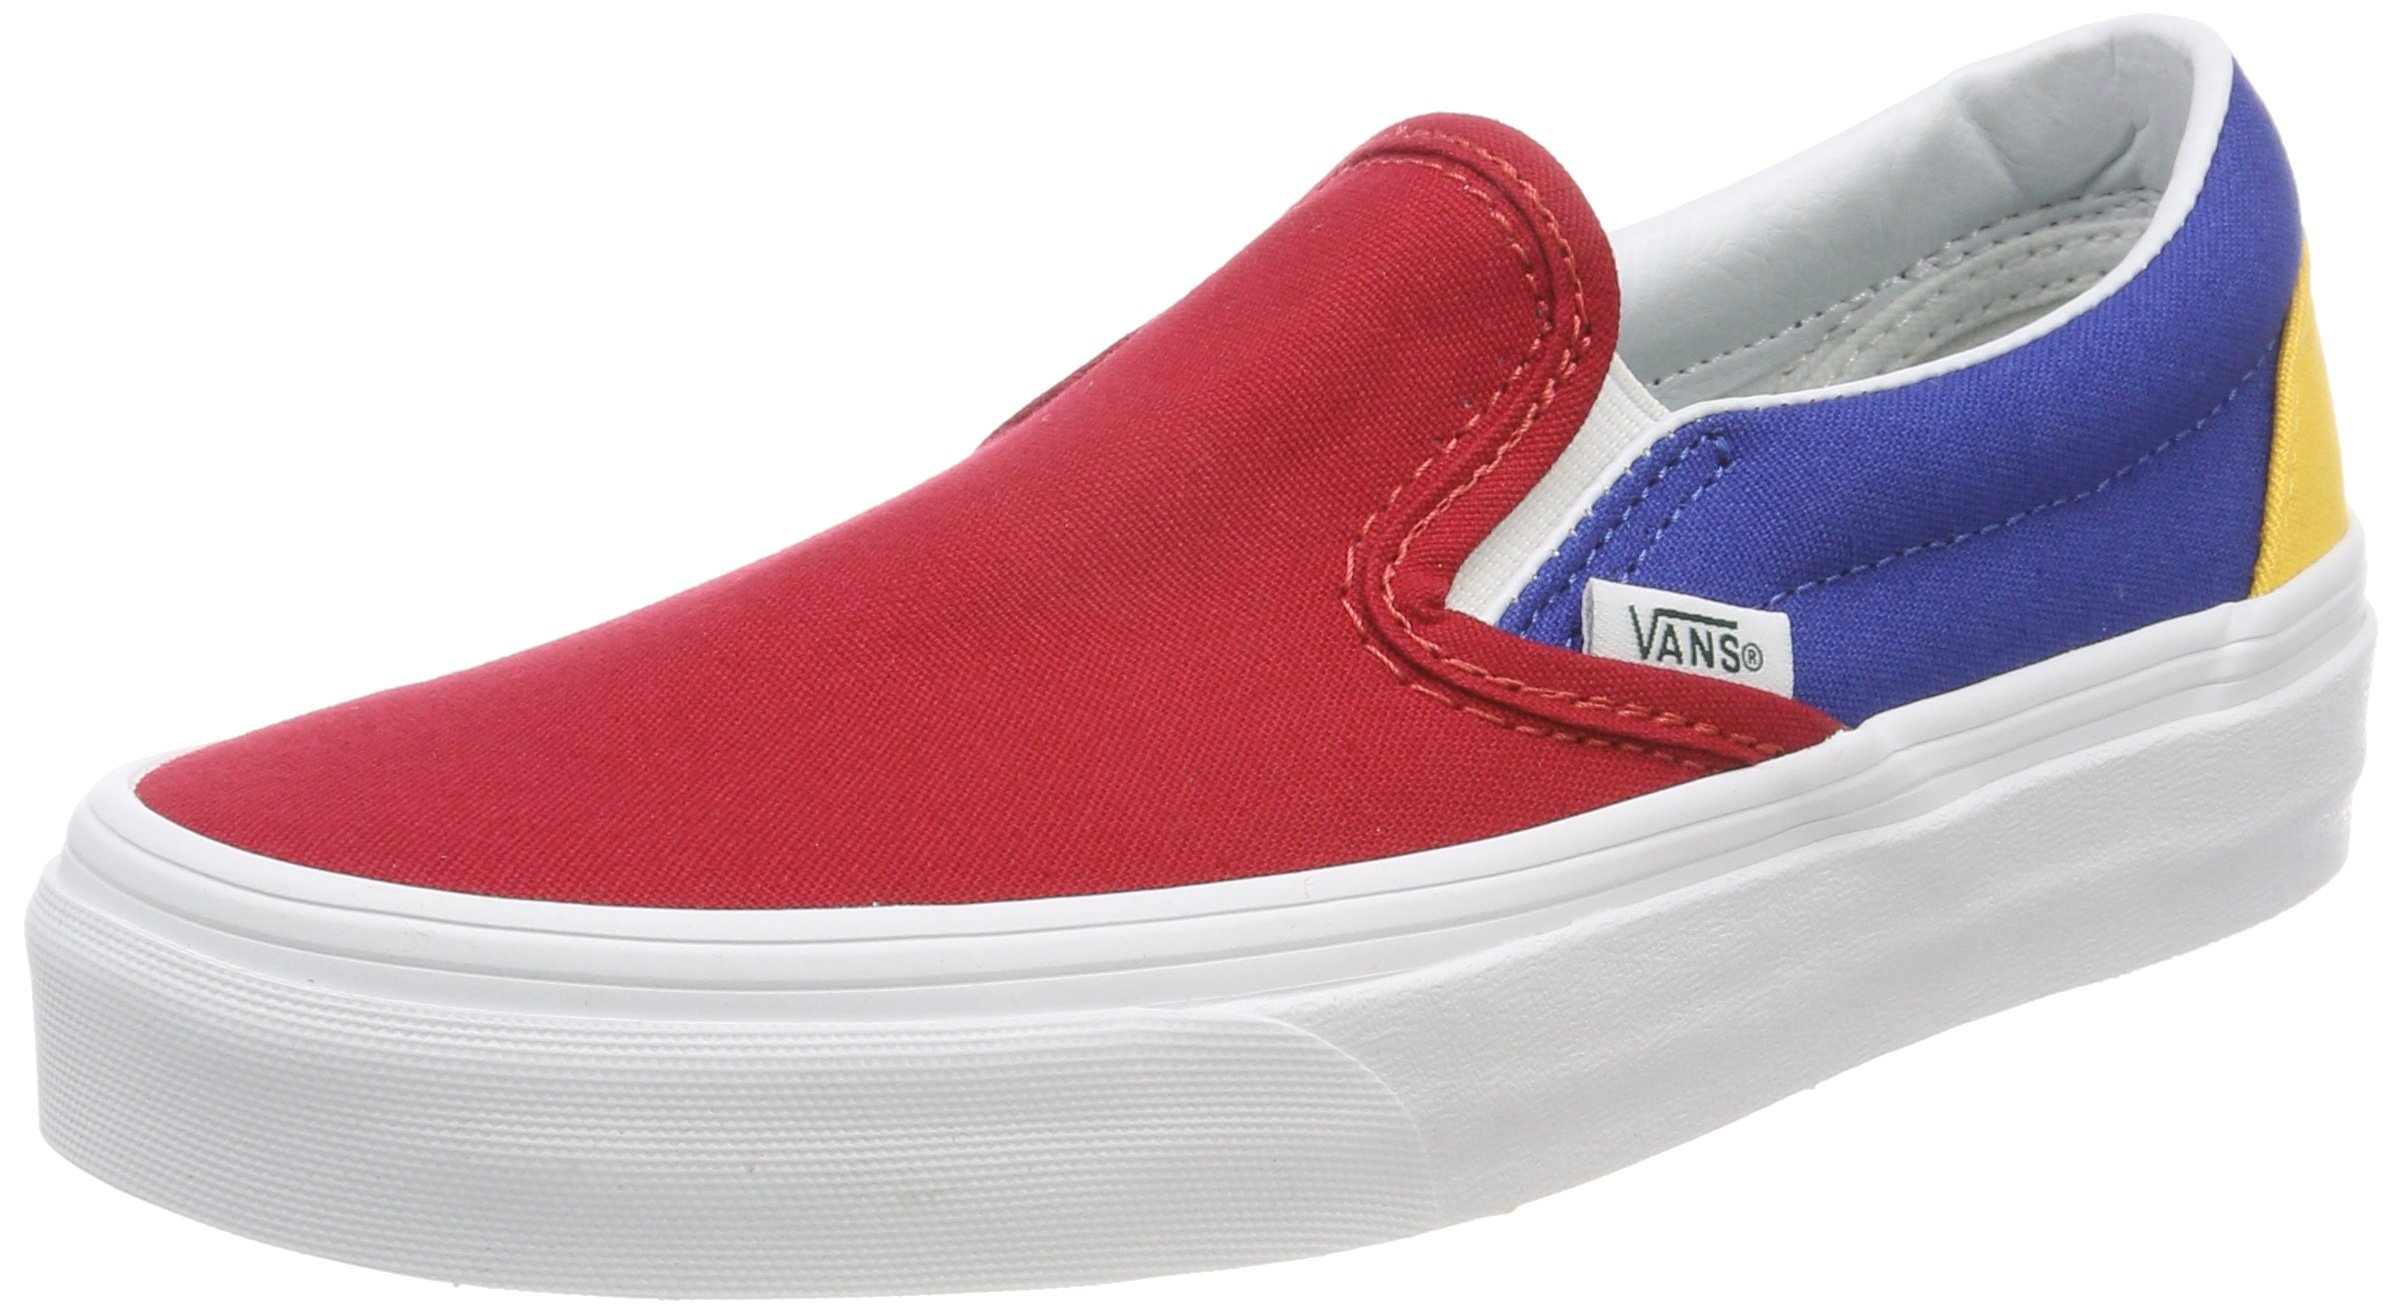 aeba88c3f3 Galleon - Vans Mens Yacht Club Classic Slip-On Shoes (9.5 Women   8 Men M  US) Red-Blue-Yellow